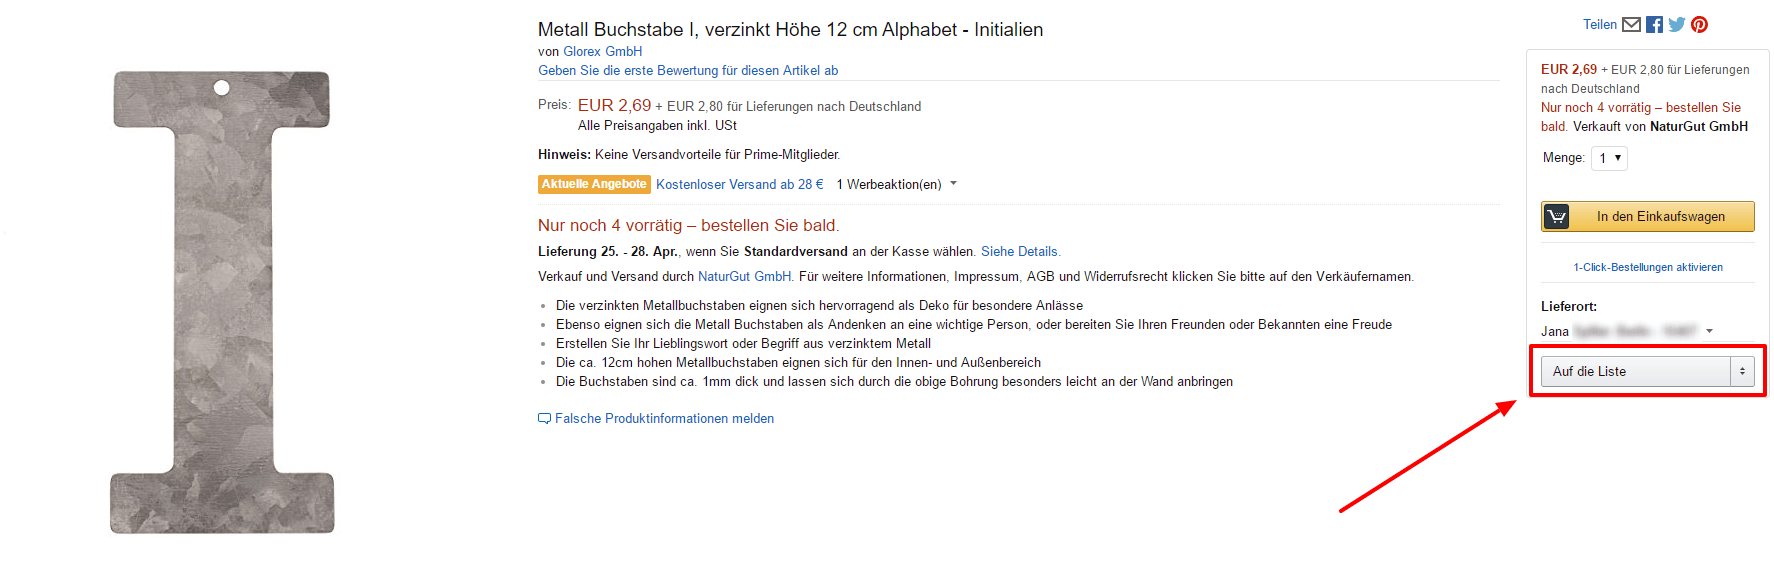 Artikel auf Liste legen Amazon